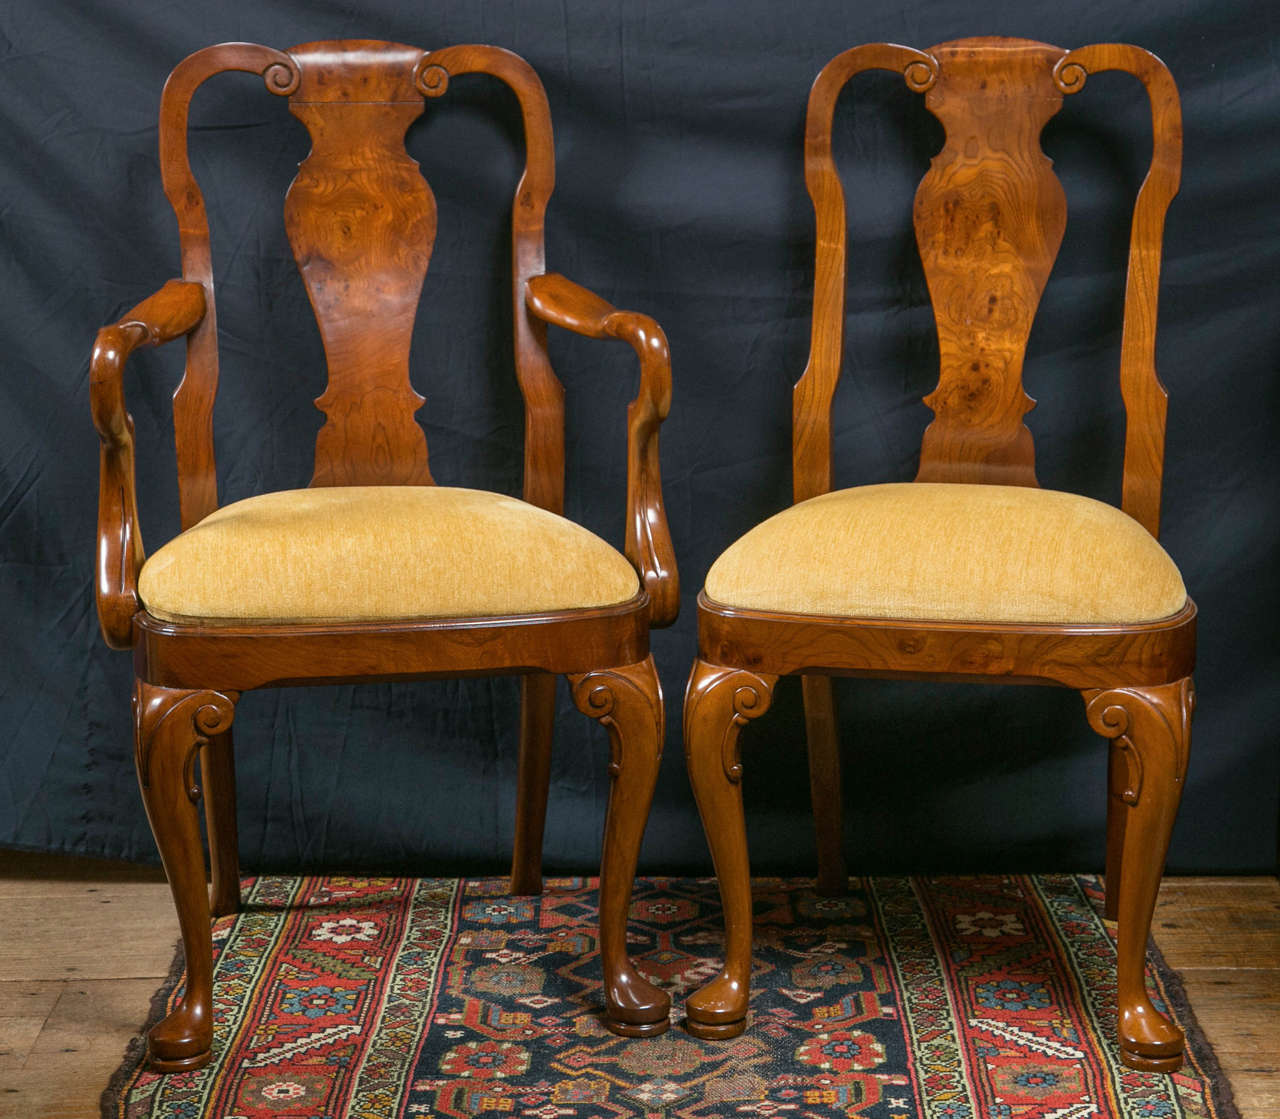 A set of ten, two arm chairs and eight side chairs; this set of walnut and walnut burl Queen Anne style dining chairs have curved wood splats that accept the curvature of the spine perfectly. Soft lines and a warm color give these chairs an